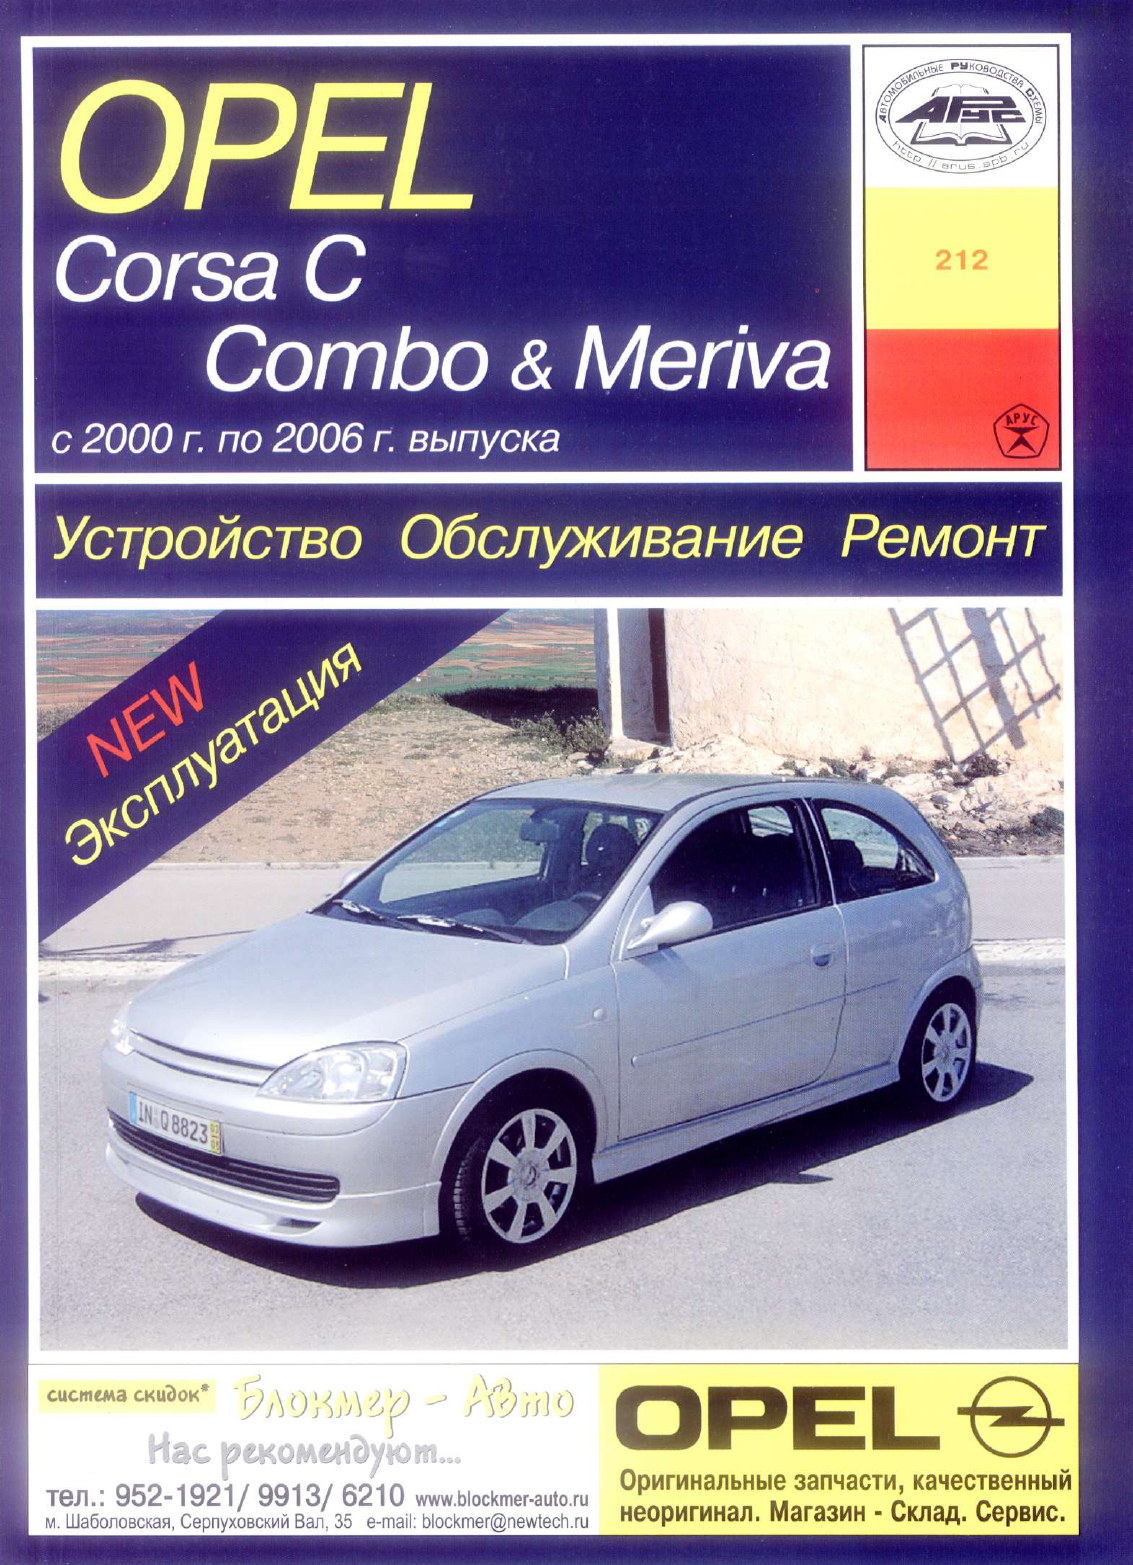 See our other Opel Corsa Manuals: